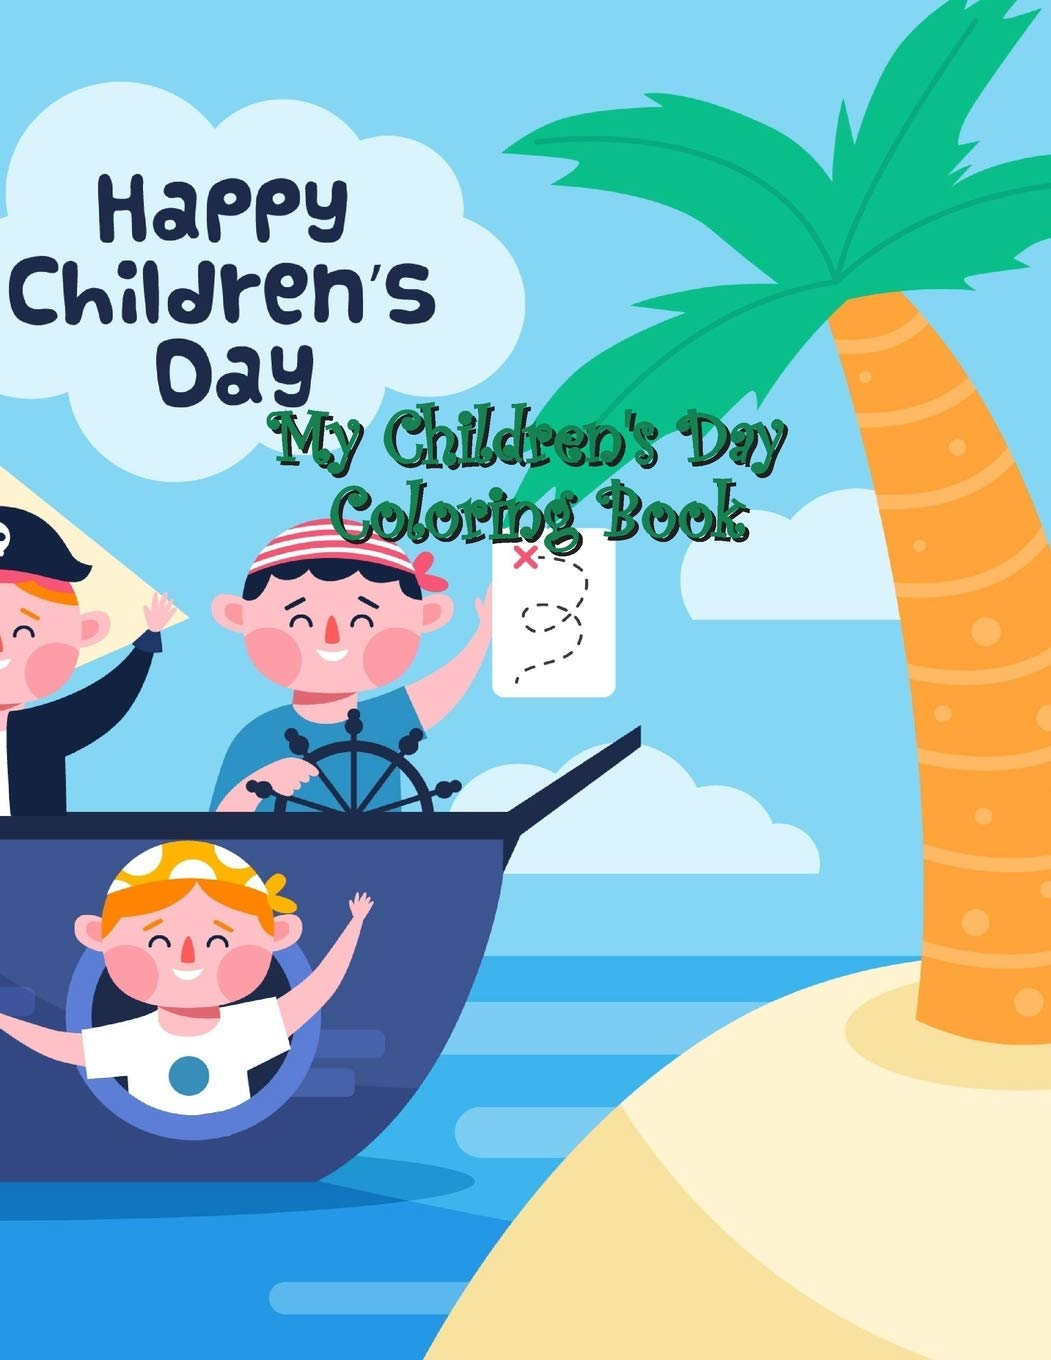 My Children S Day Coloring Book Fun And Easy Happy With Children S Day Kids And Friends Quotes Of Children Playground Balloons Perfect To Color For Kids Toddlers Preschool And All Clarke Molly M